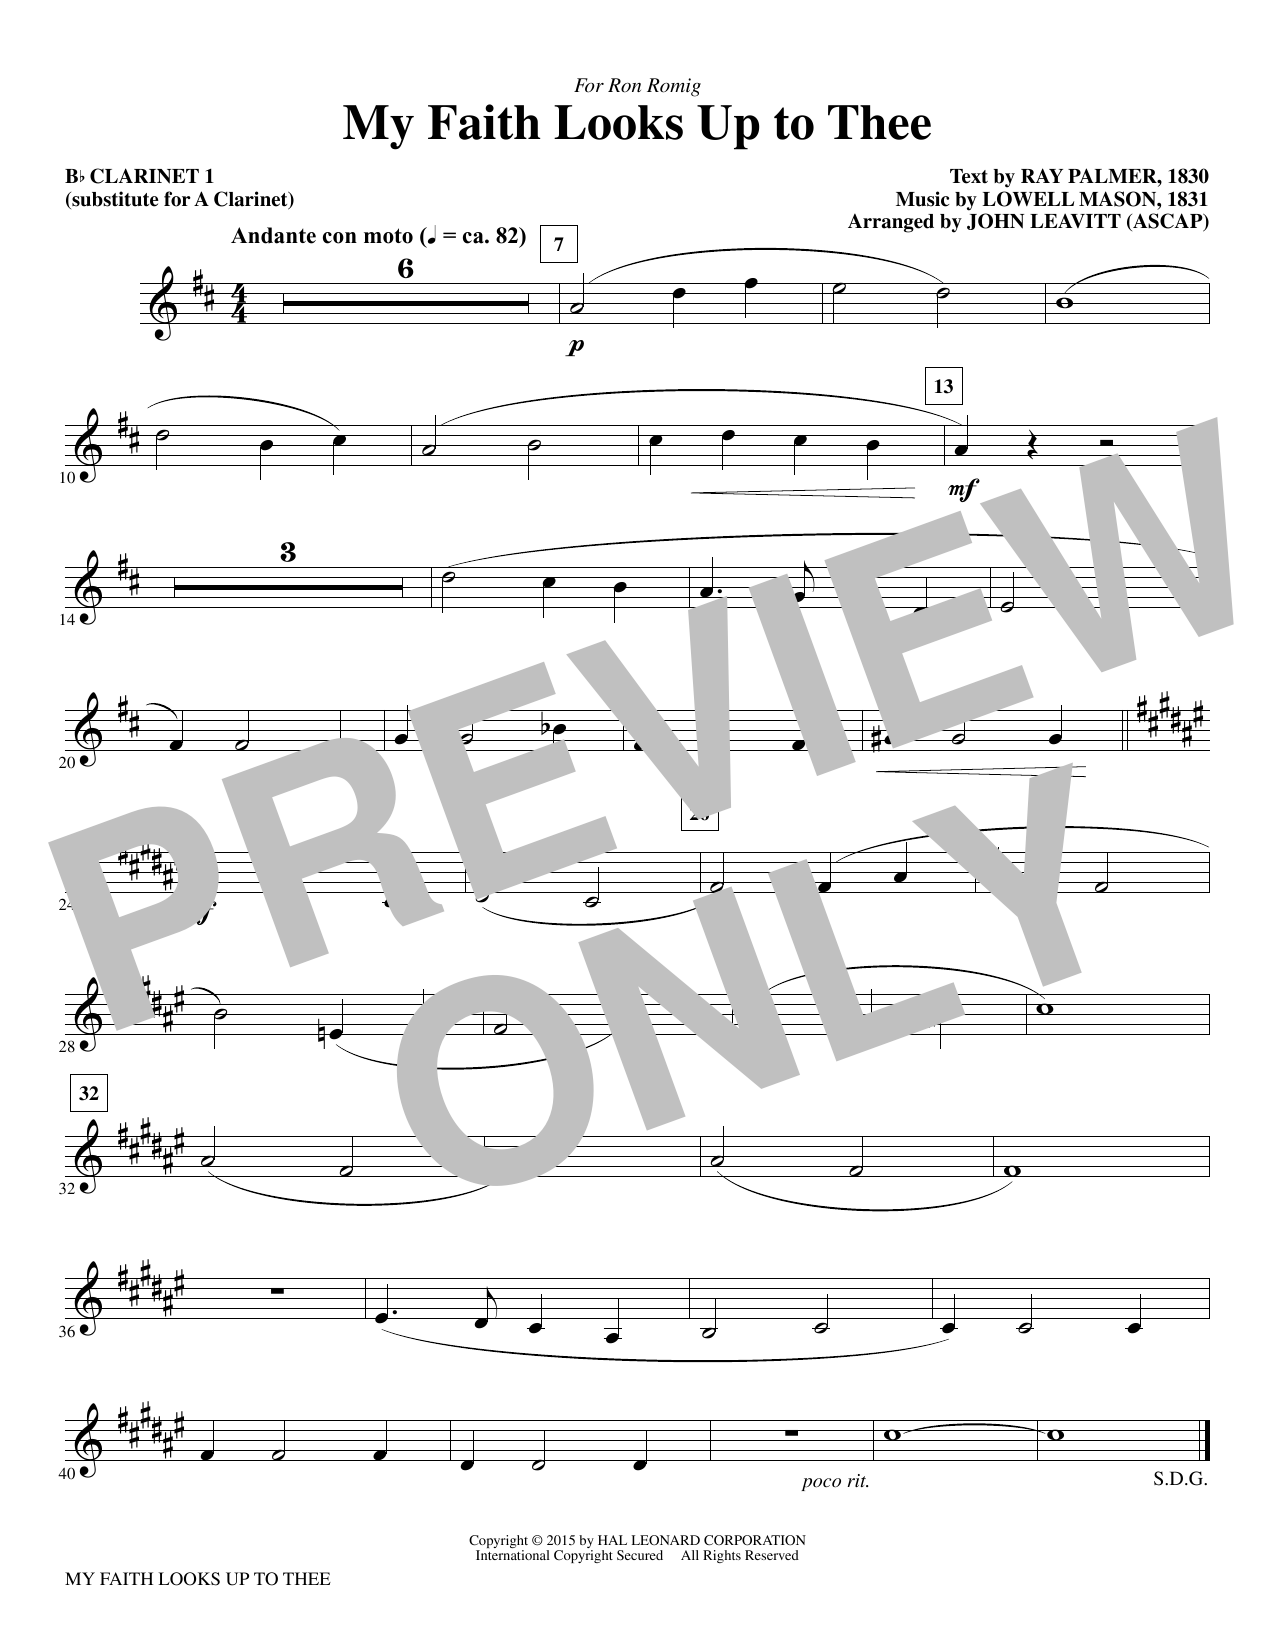 My Faith Looks Up To Thee - Bb Clarinet 1 (sub. A Cl. 1) Sheet Music